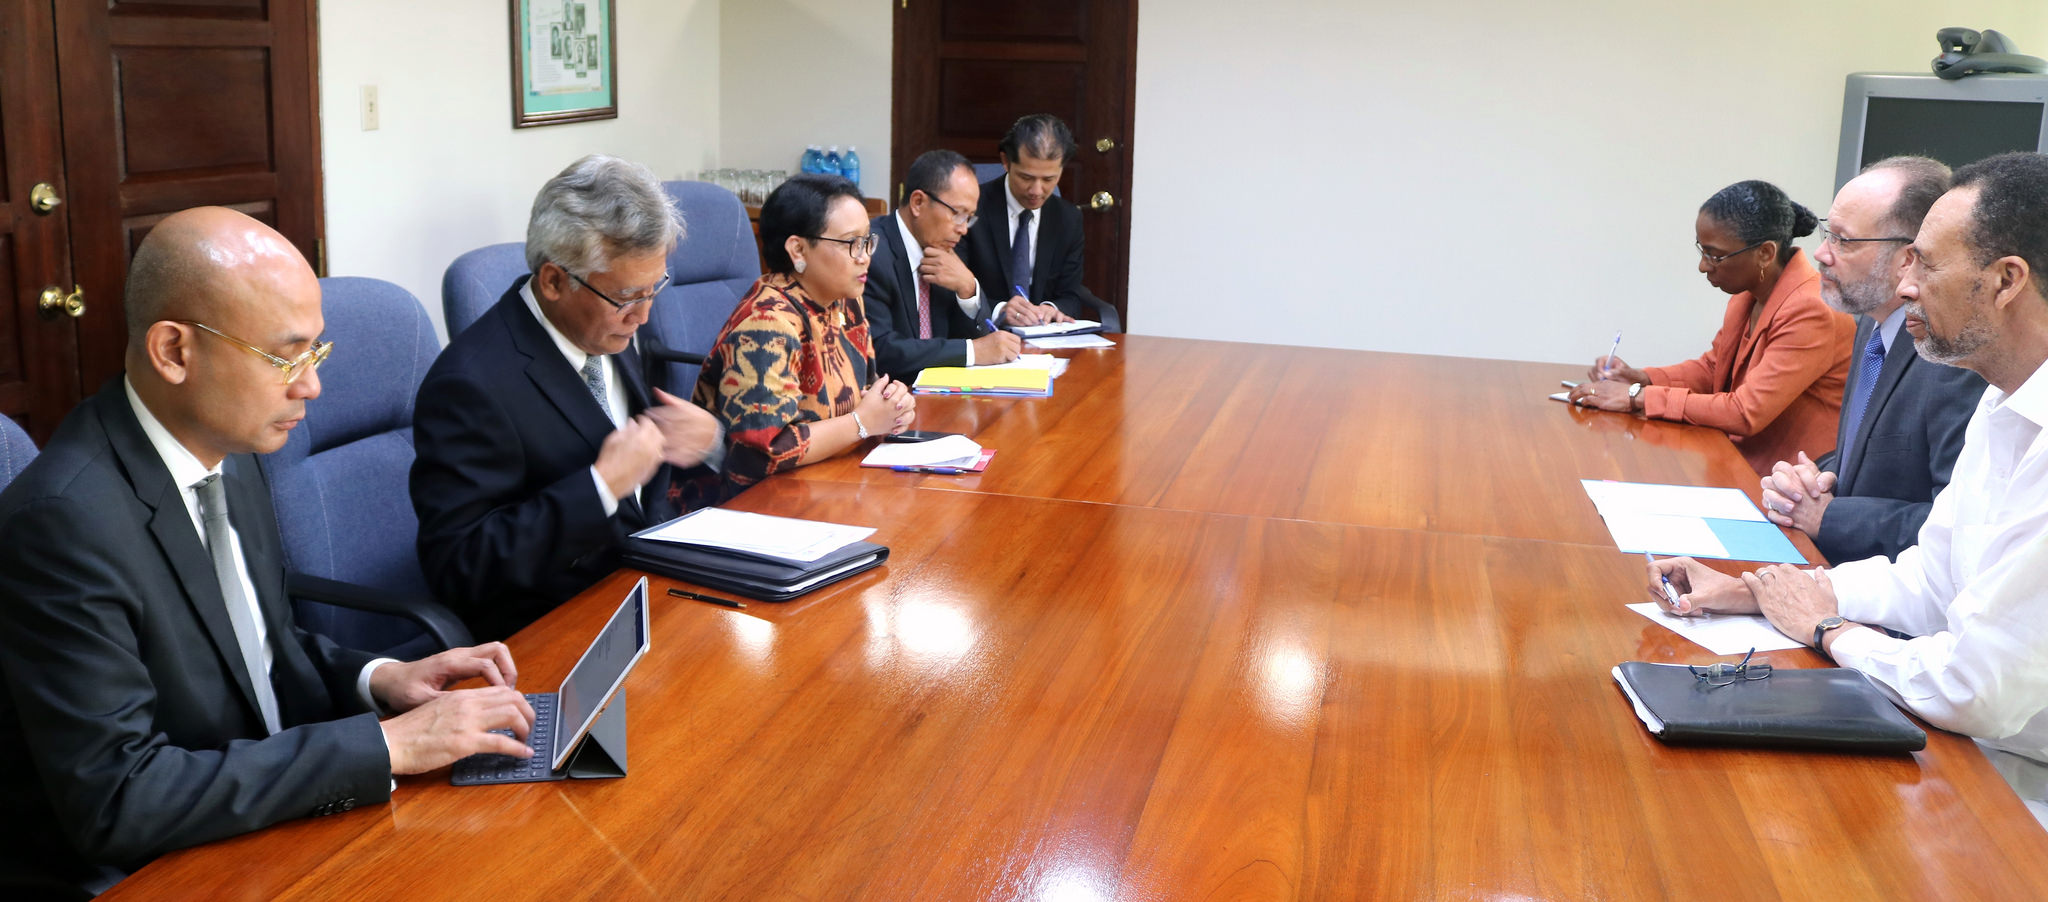 Secretary-General and Foreign Minister joined by their officials for talks